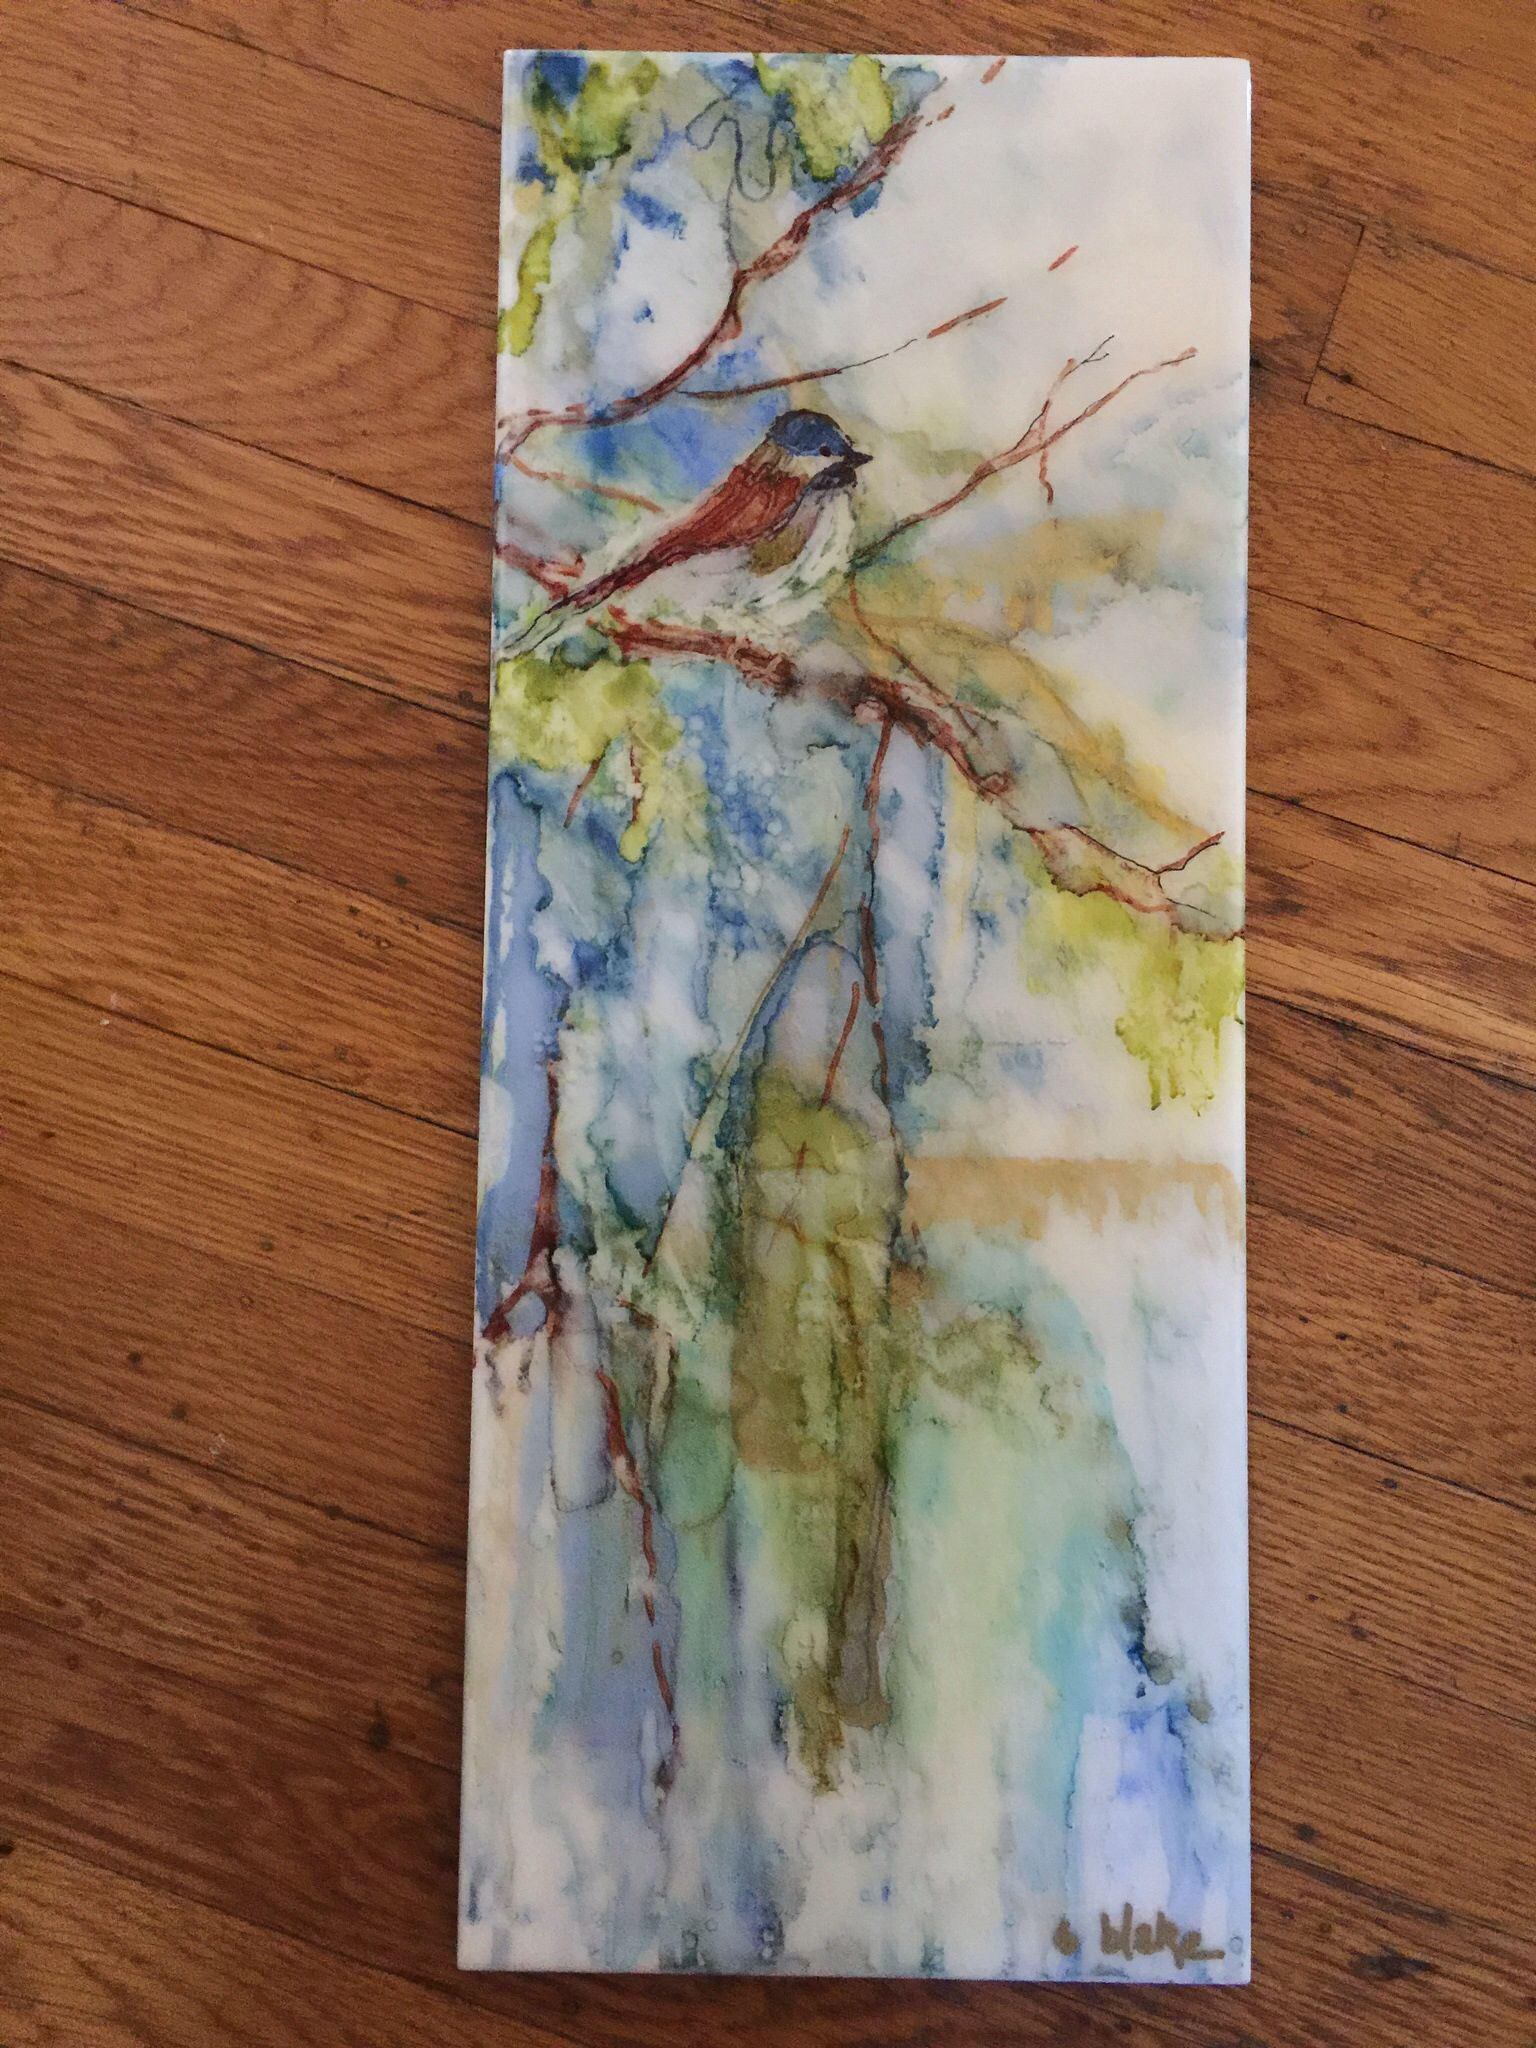 Alcohol Ink On Ceramic Tile Bird Artwork Painting By Mary Scott